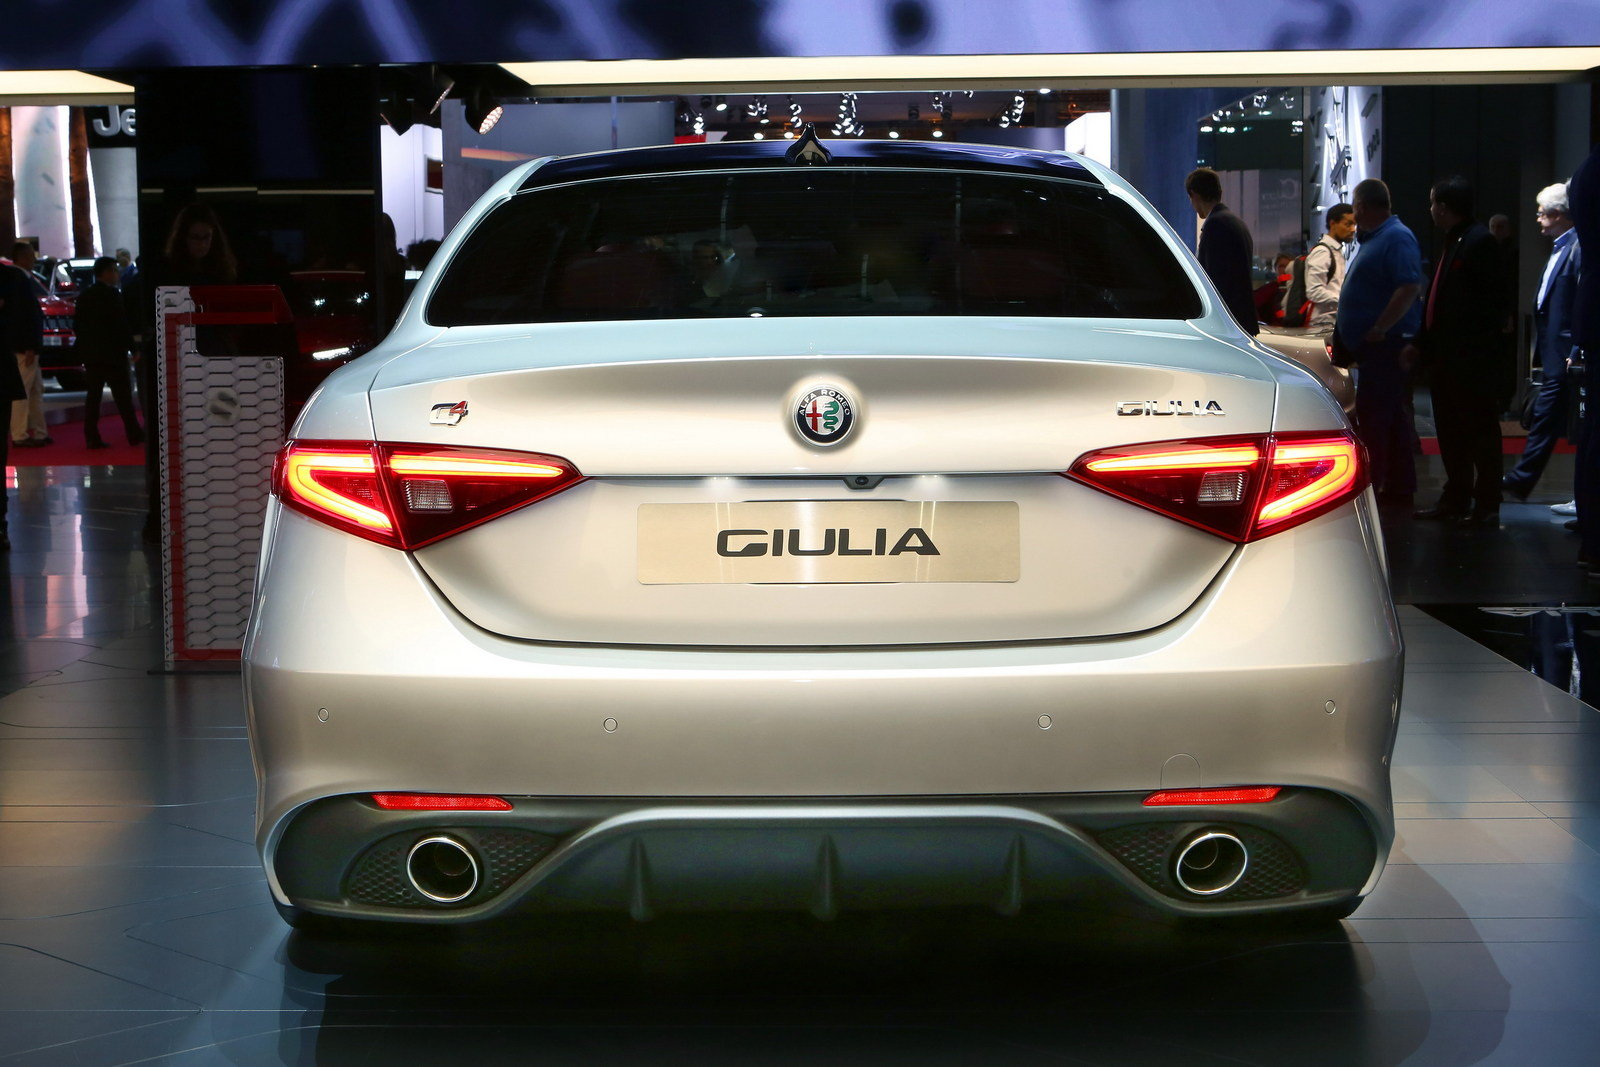 alfa romeo giulia veloce slots nicely between the base and quadrifoglio variants picture. Black Bedroom Furniture Sets. Home Design Ideas